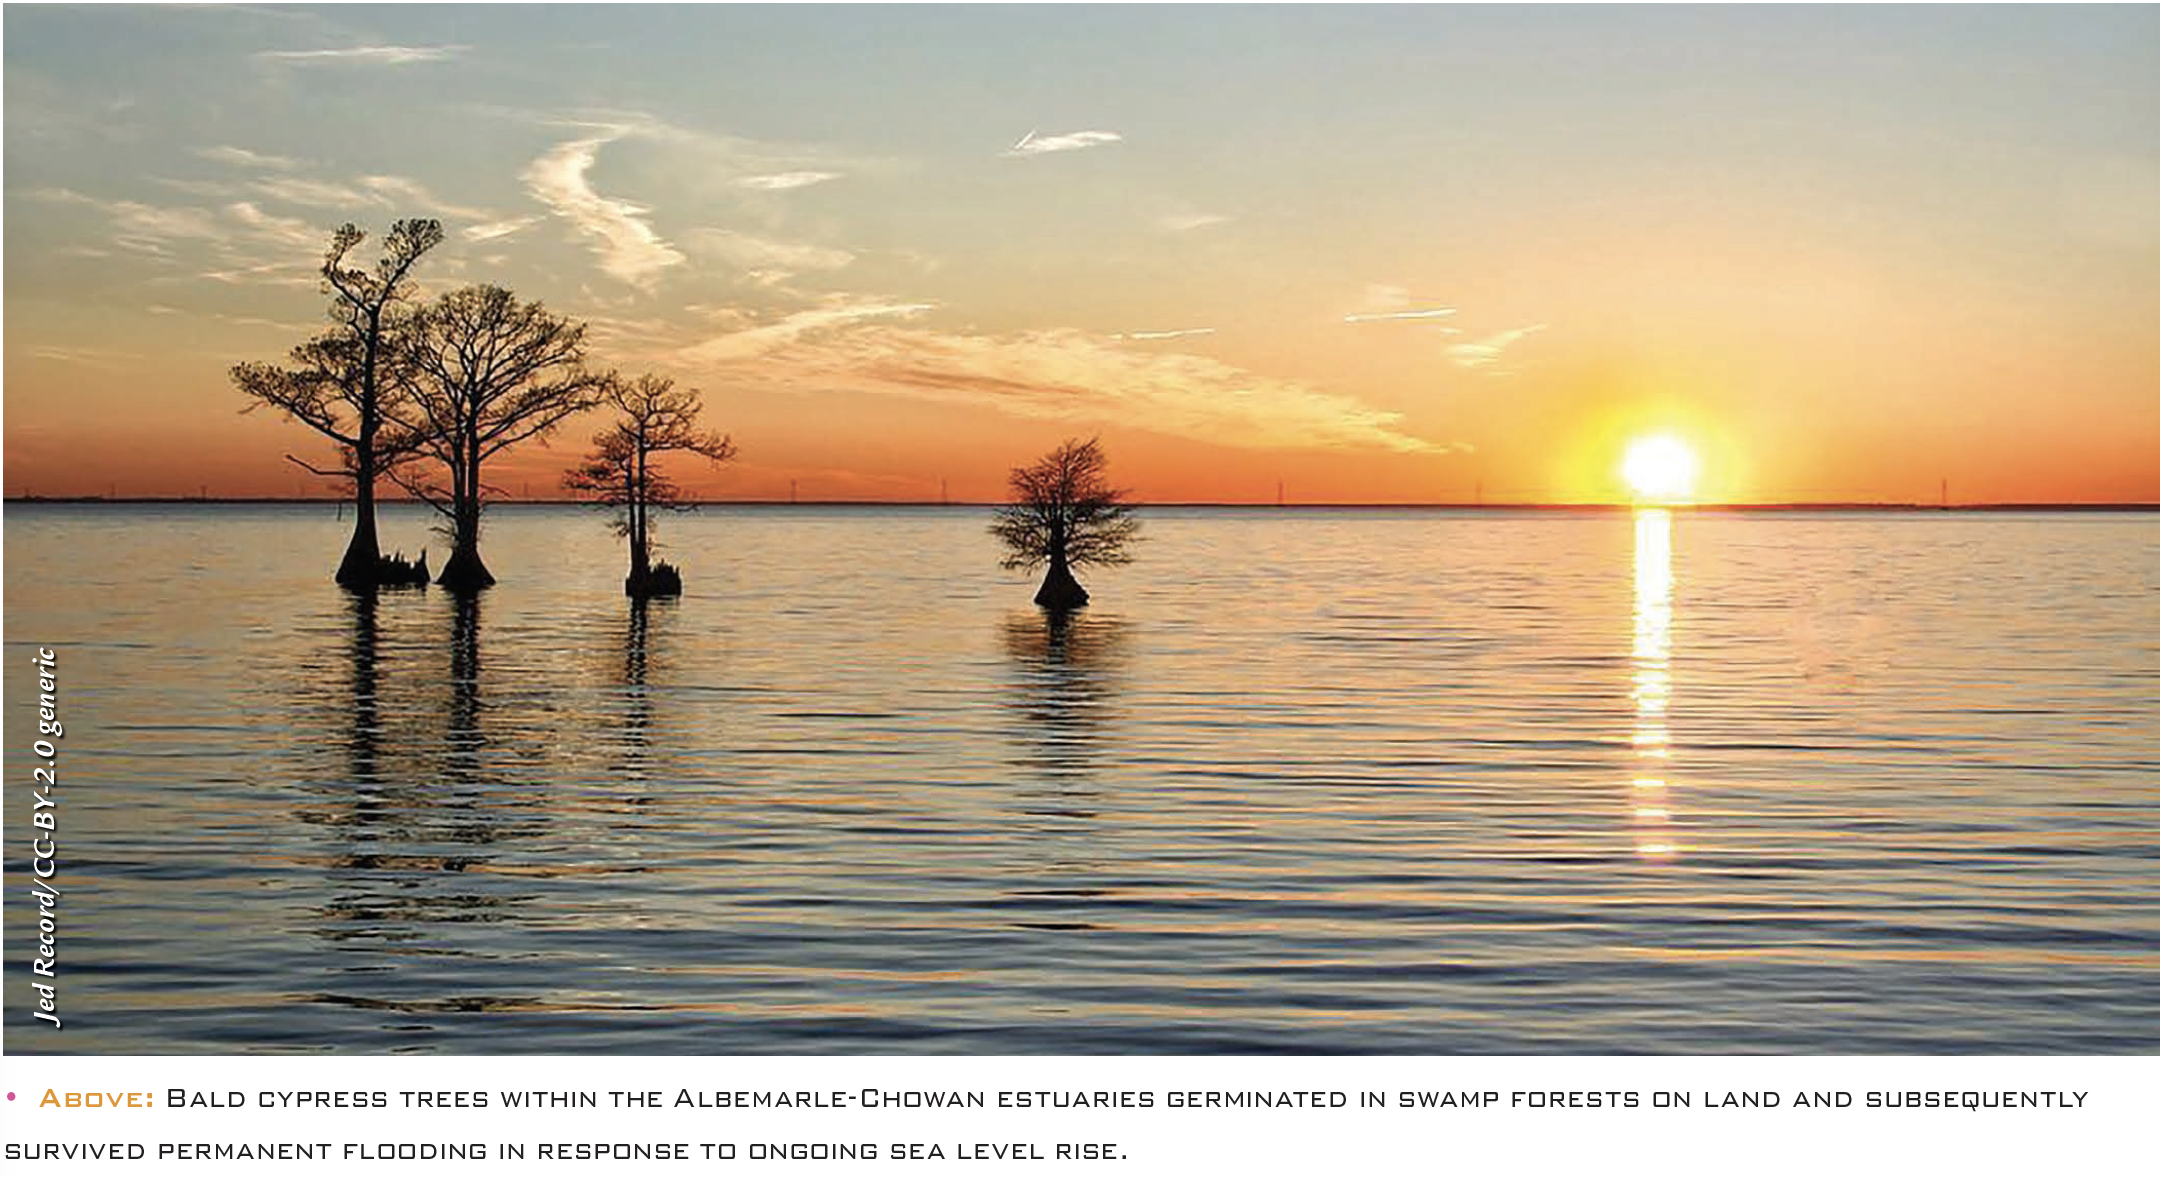 • Above: Bald cypress trees within the Albemarle-Chowan estuaries germinated in swamp forests on land and subsequently survived permanent flooding in response to ongoing sea level rise.